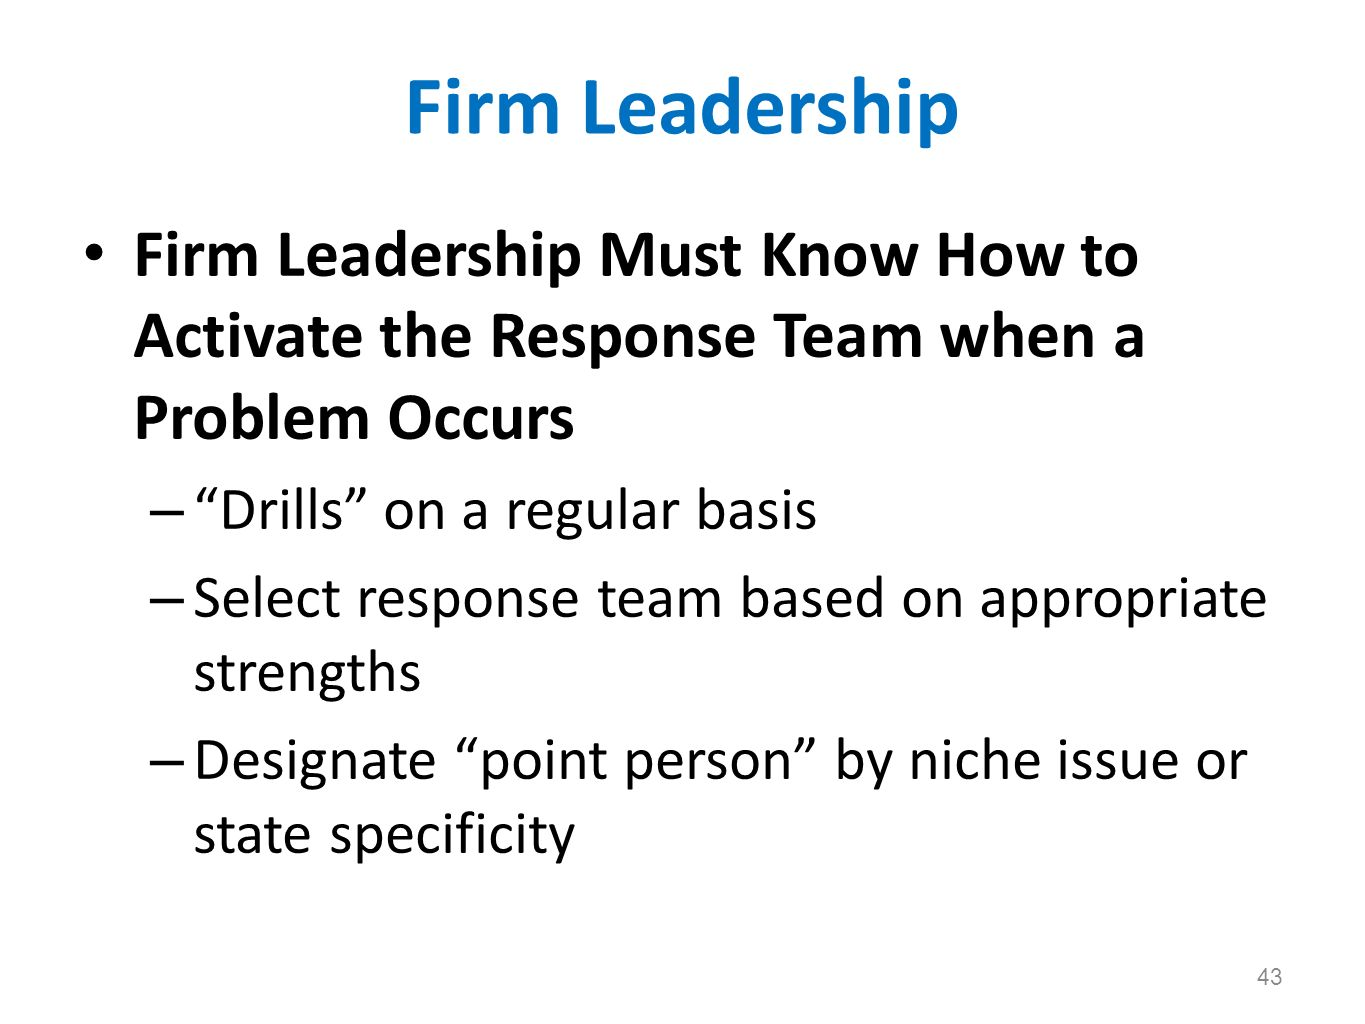 Firm Leadership Firm Leadership Must Know How to Activate the Response Team when a Problem Occurs. Drills on a regular basis.